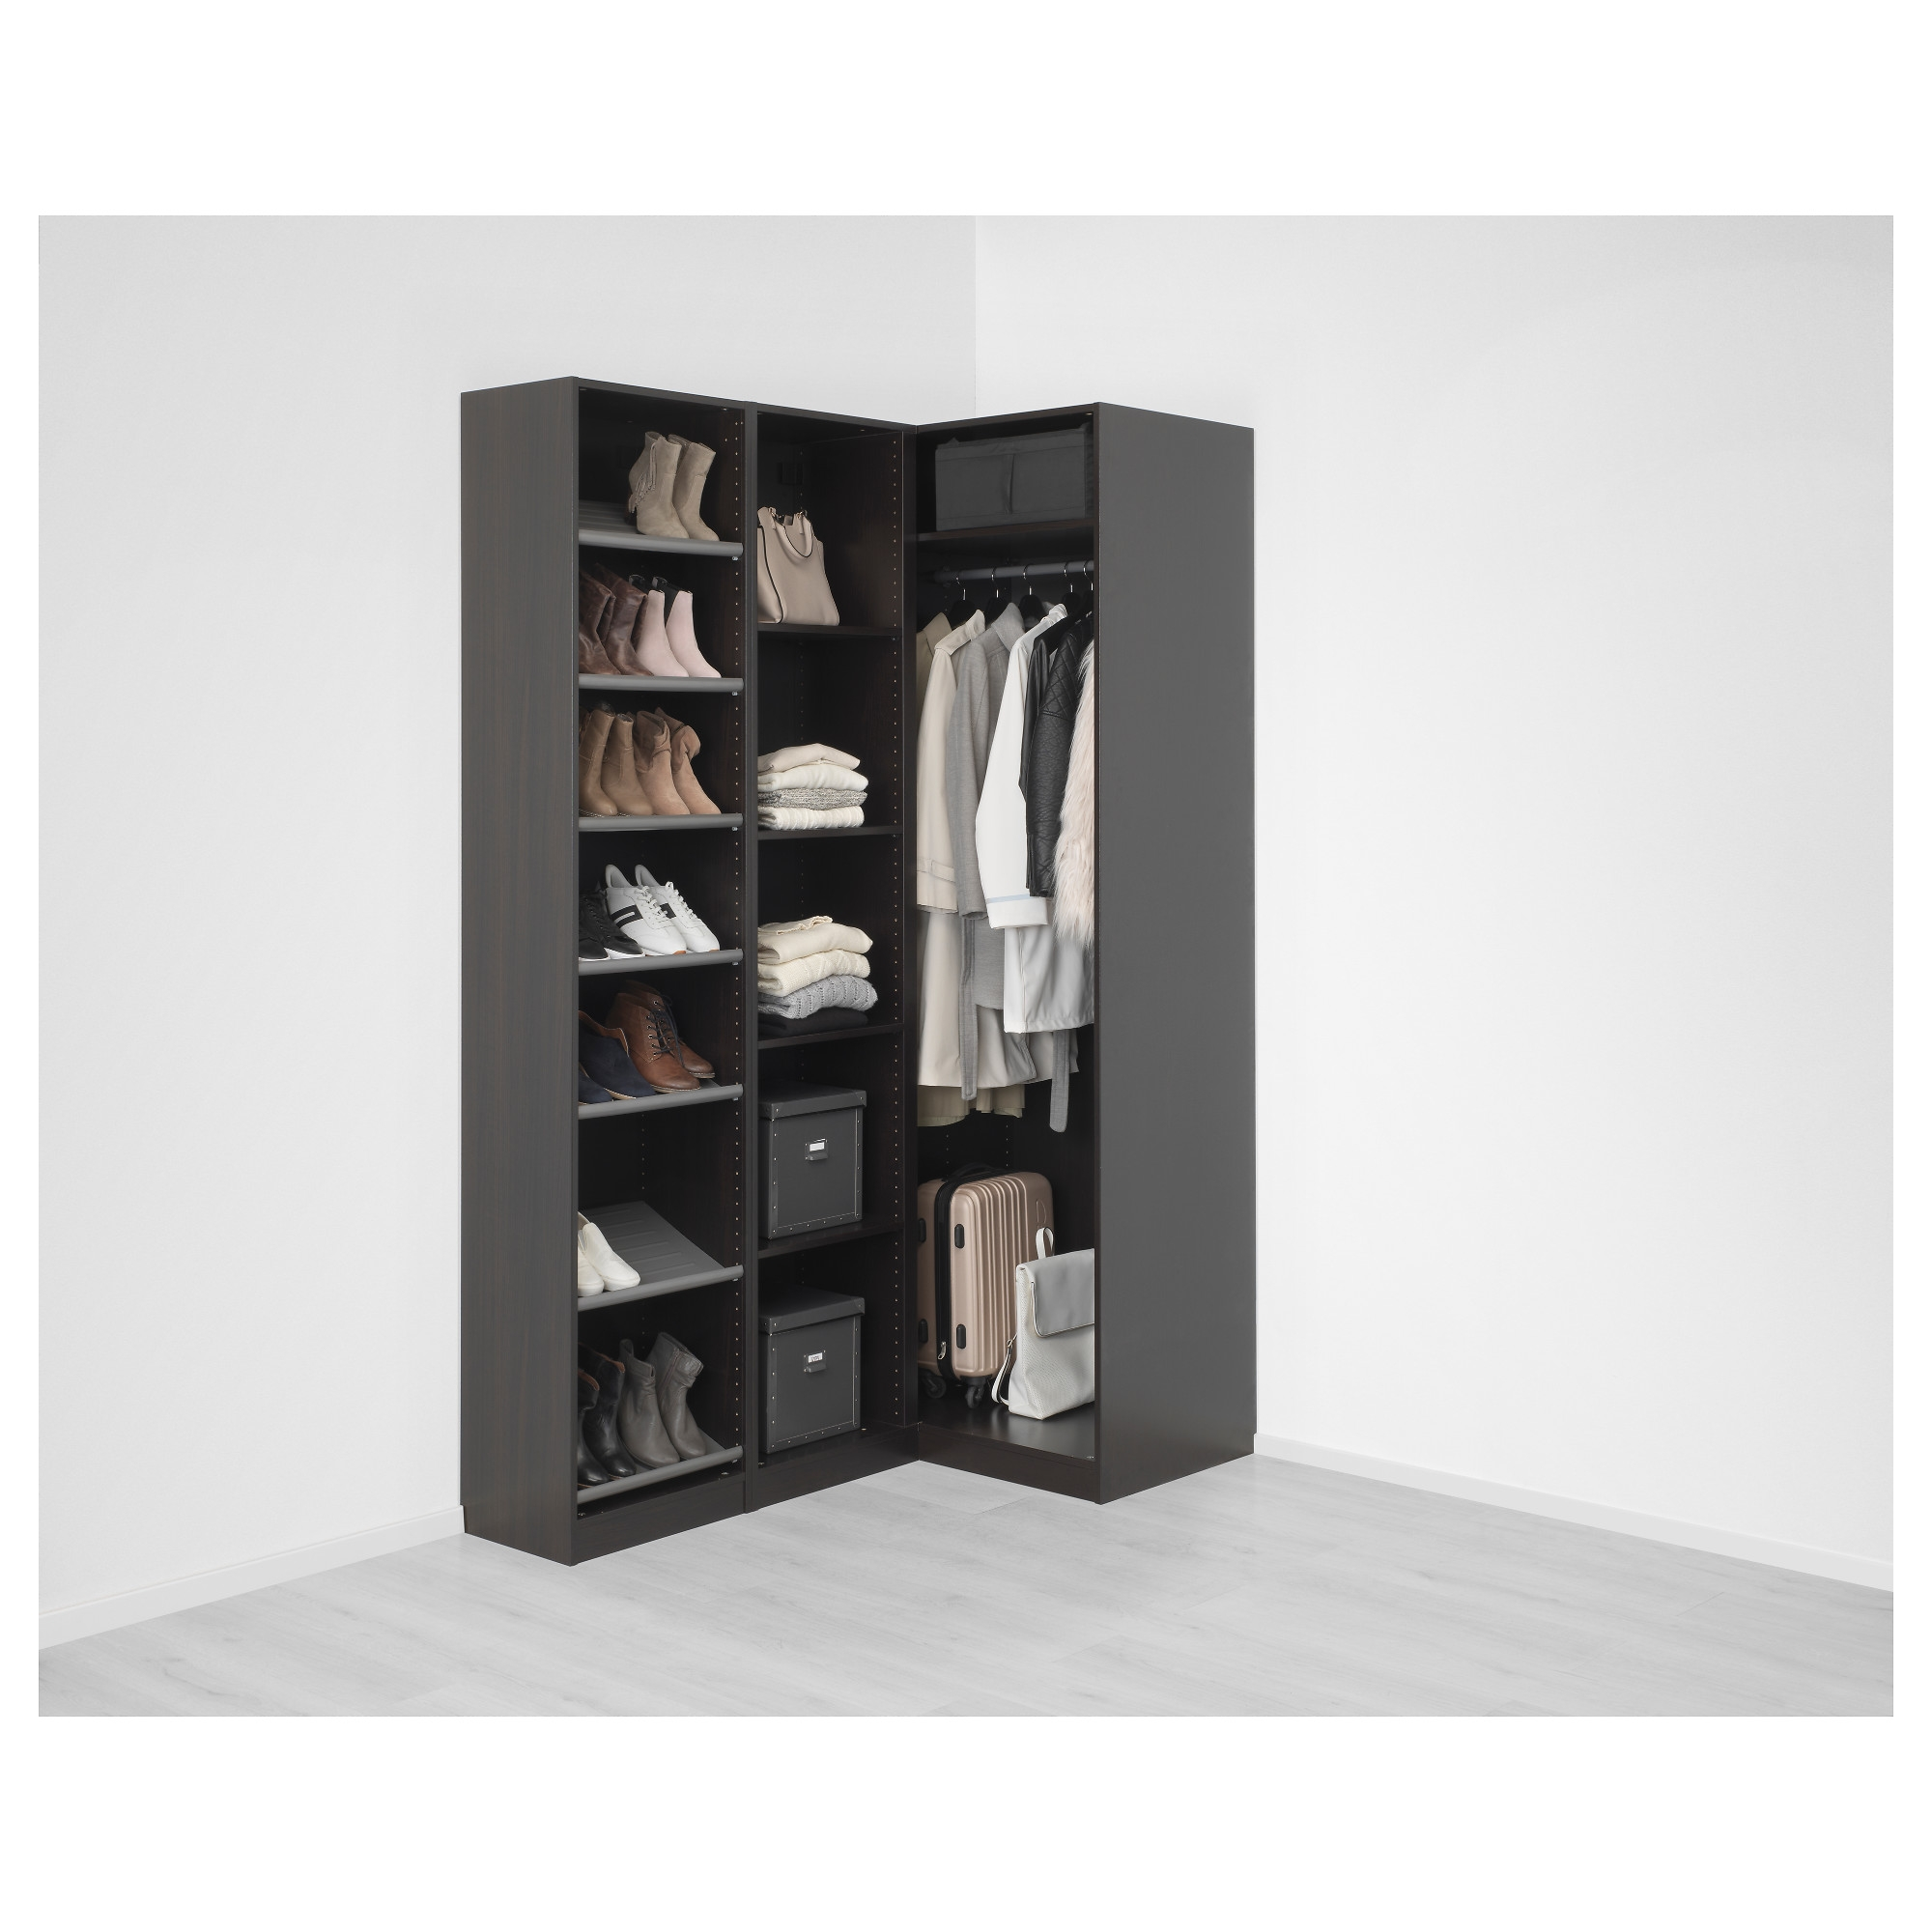 Pax Corner Wardrobe Black Brownnexus Vikedal 16088×236 Cm Ikea Within Corner Wardrobe Closet IKEA (View 25 of 25)